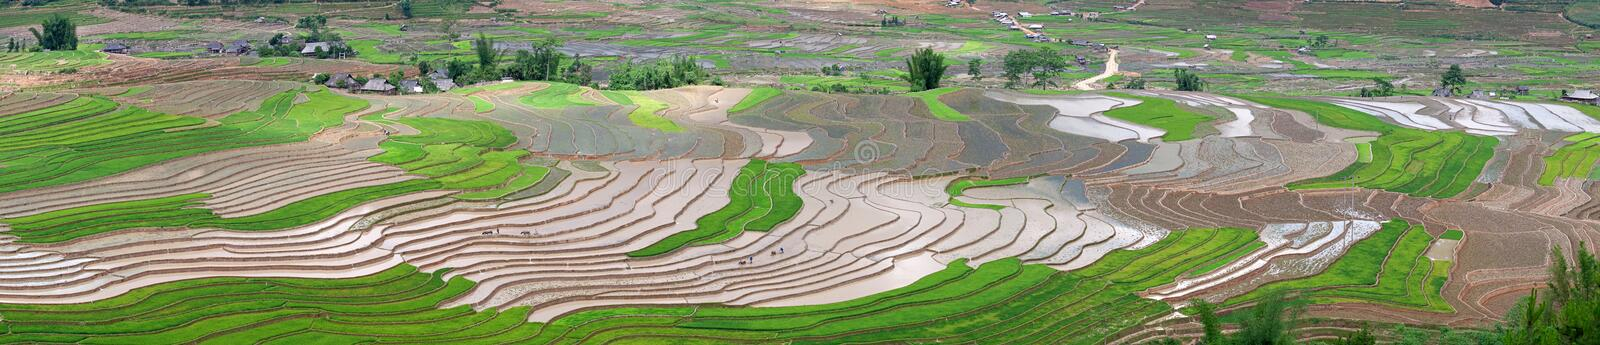 Terraced rice fields in Vietnam stock photography